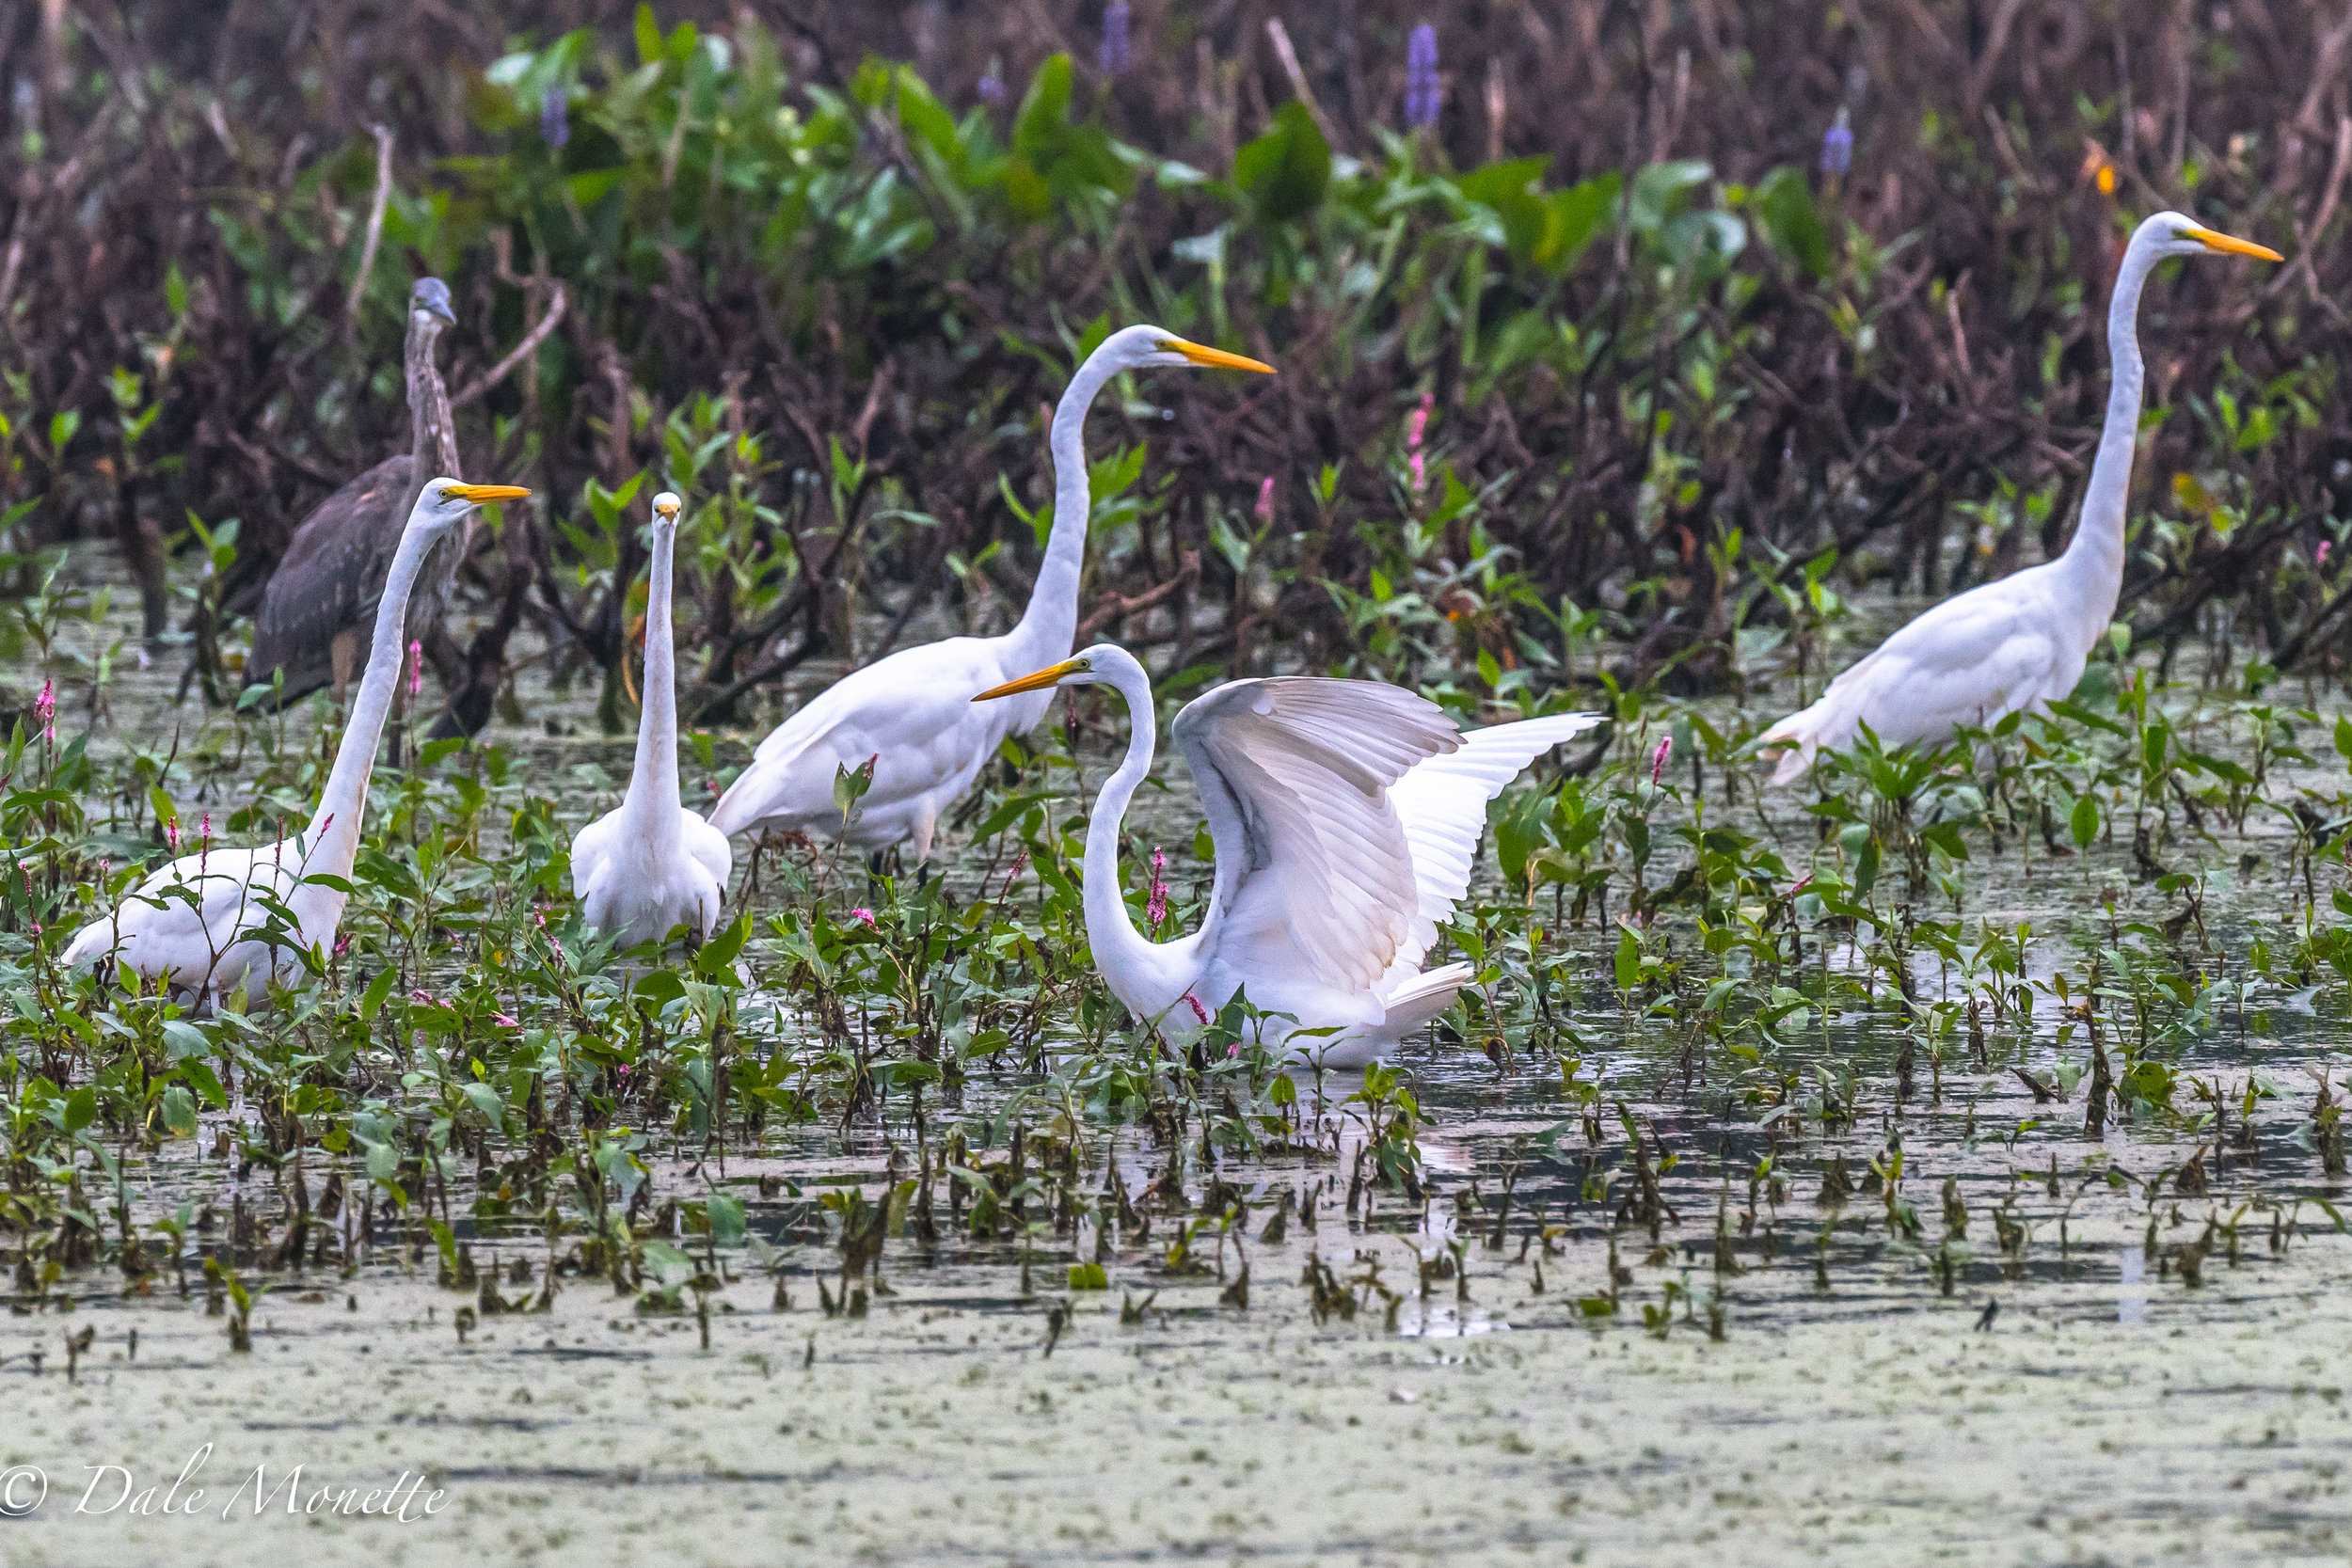 I spent the day with about 30 to 40 great egrets in south western MA.  These birds are great to watch and wander in the late summer after nesting season ends for them.  9/1/16